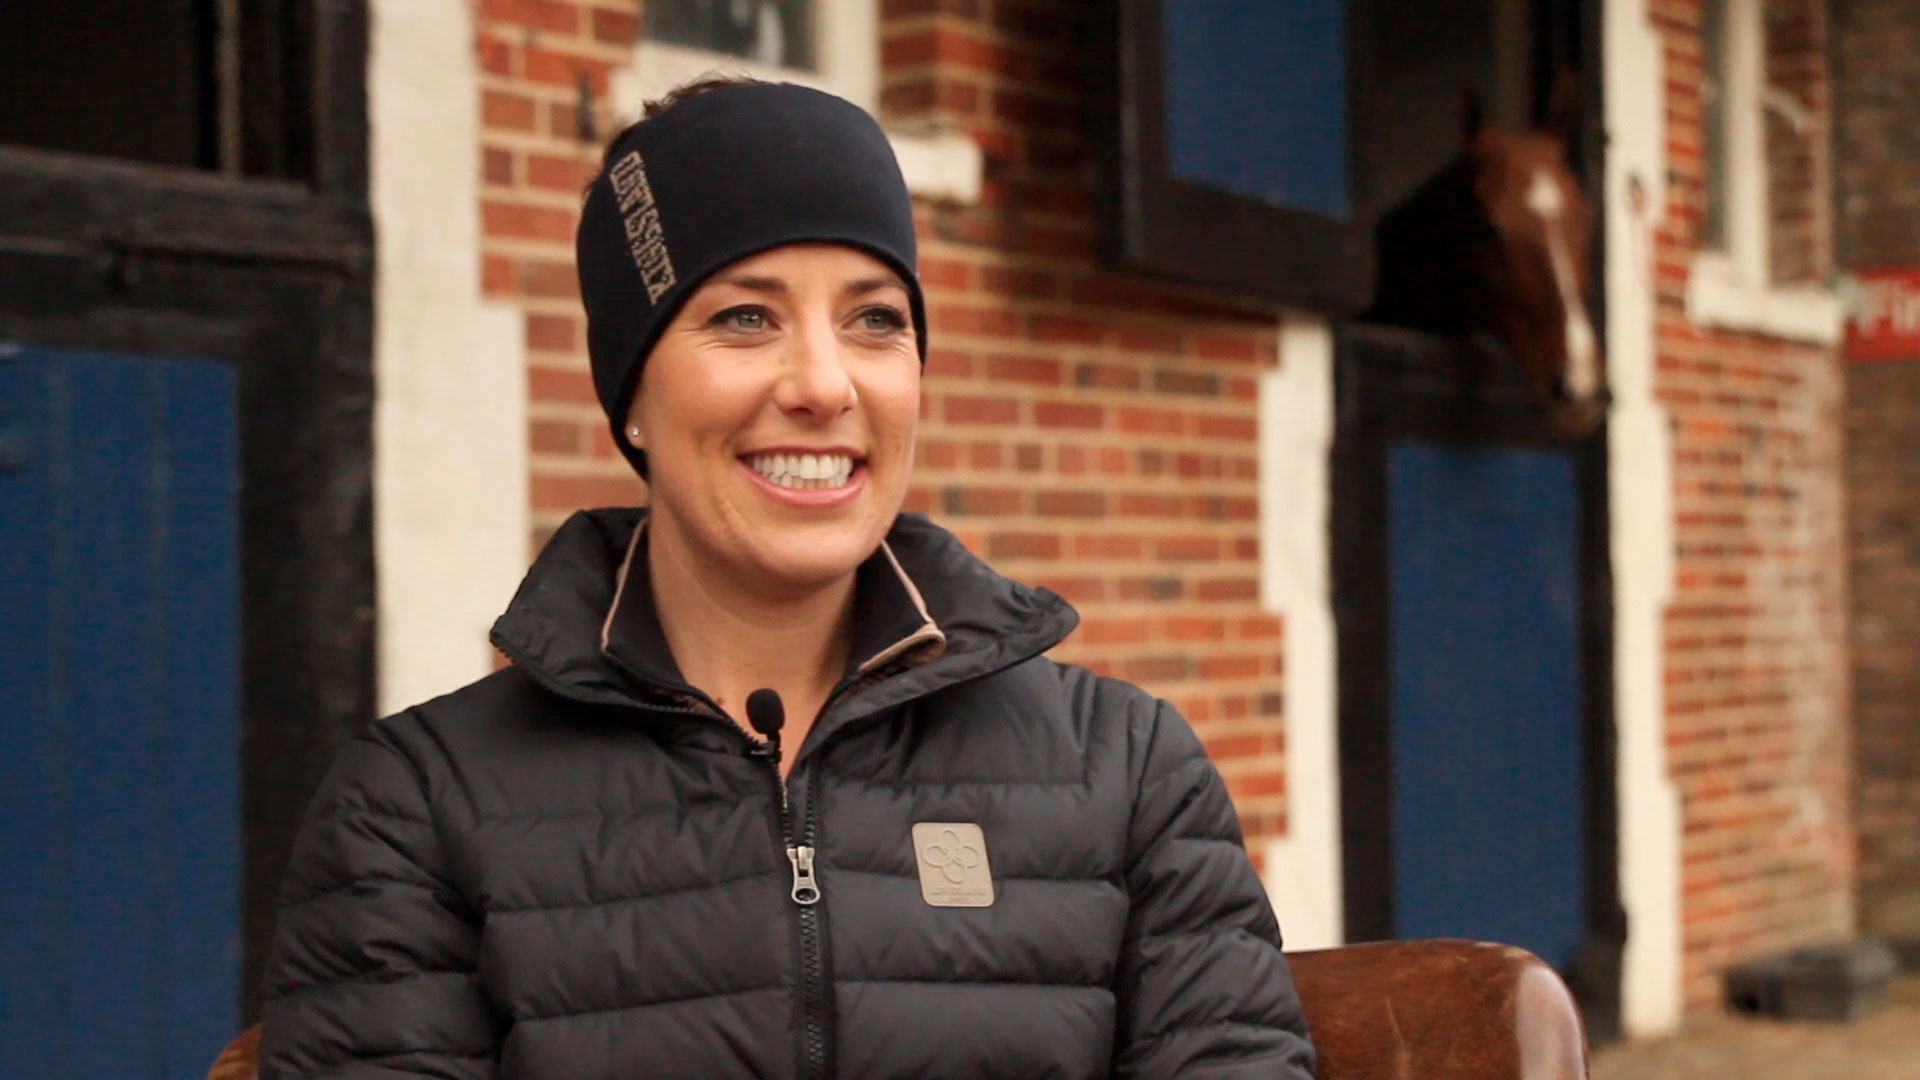 CHARLOTTE DUJARDIN: MY TIPS TO SUCCEED